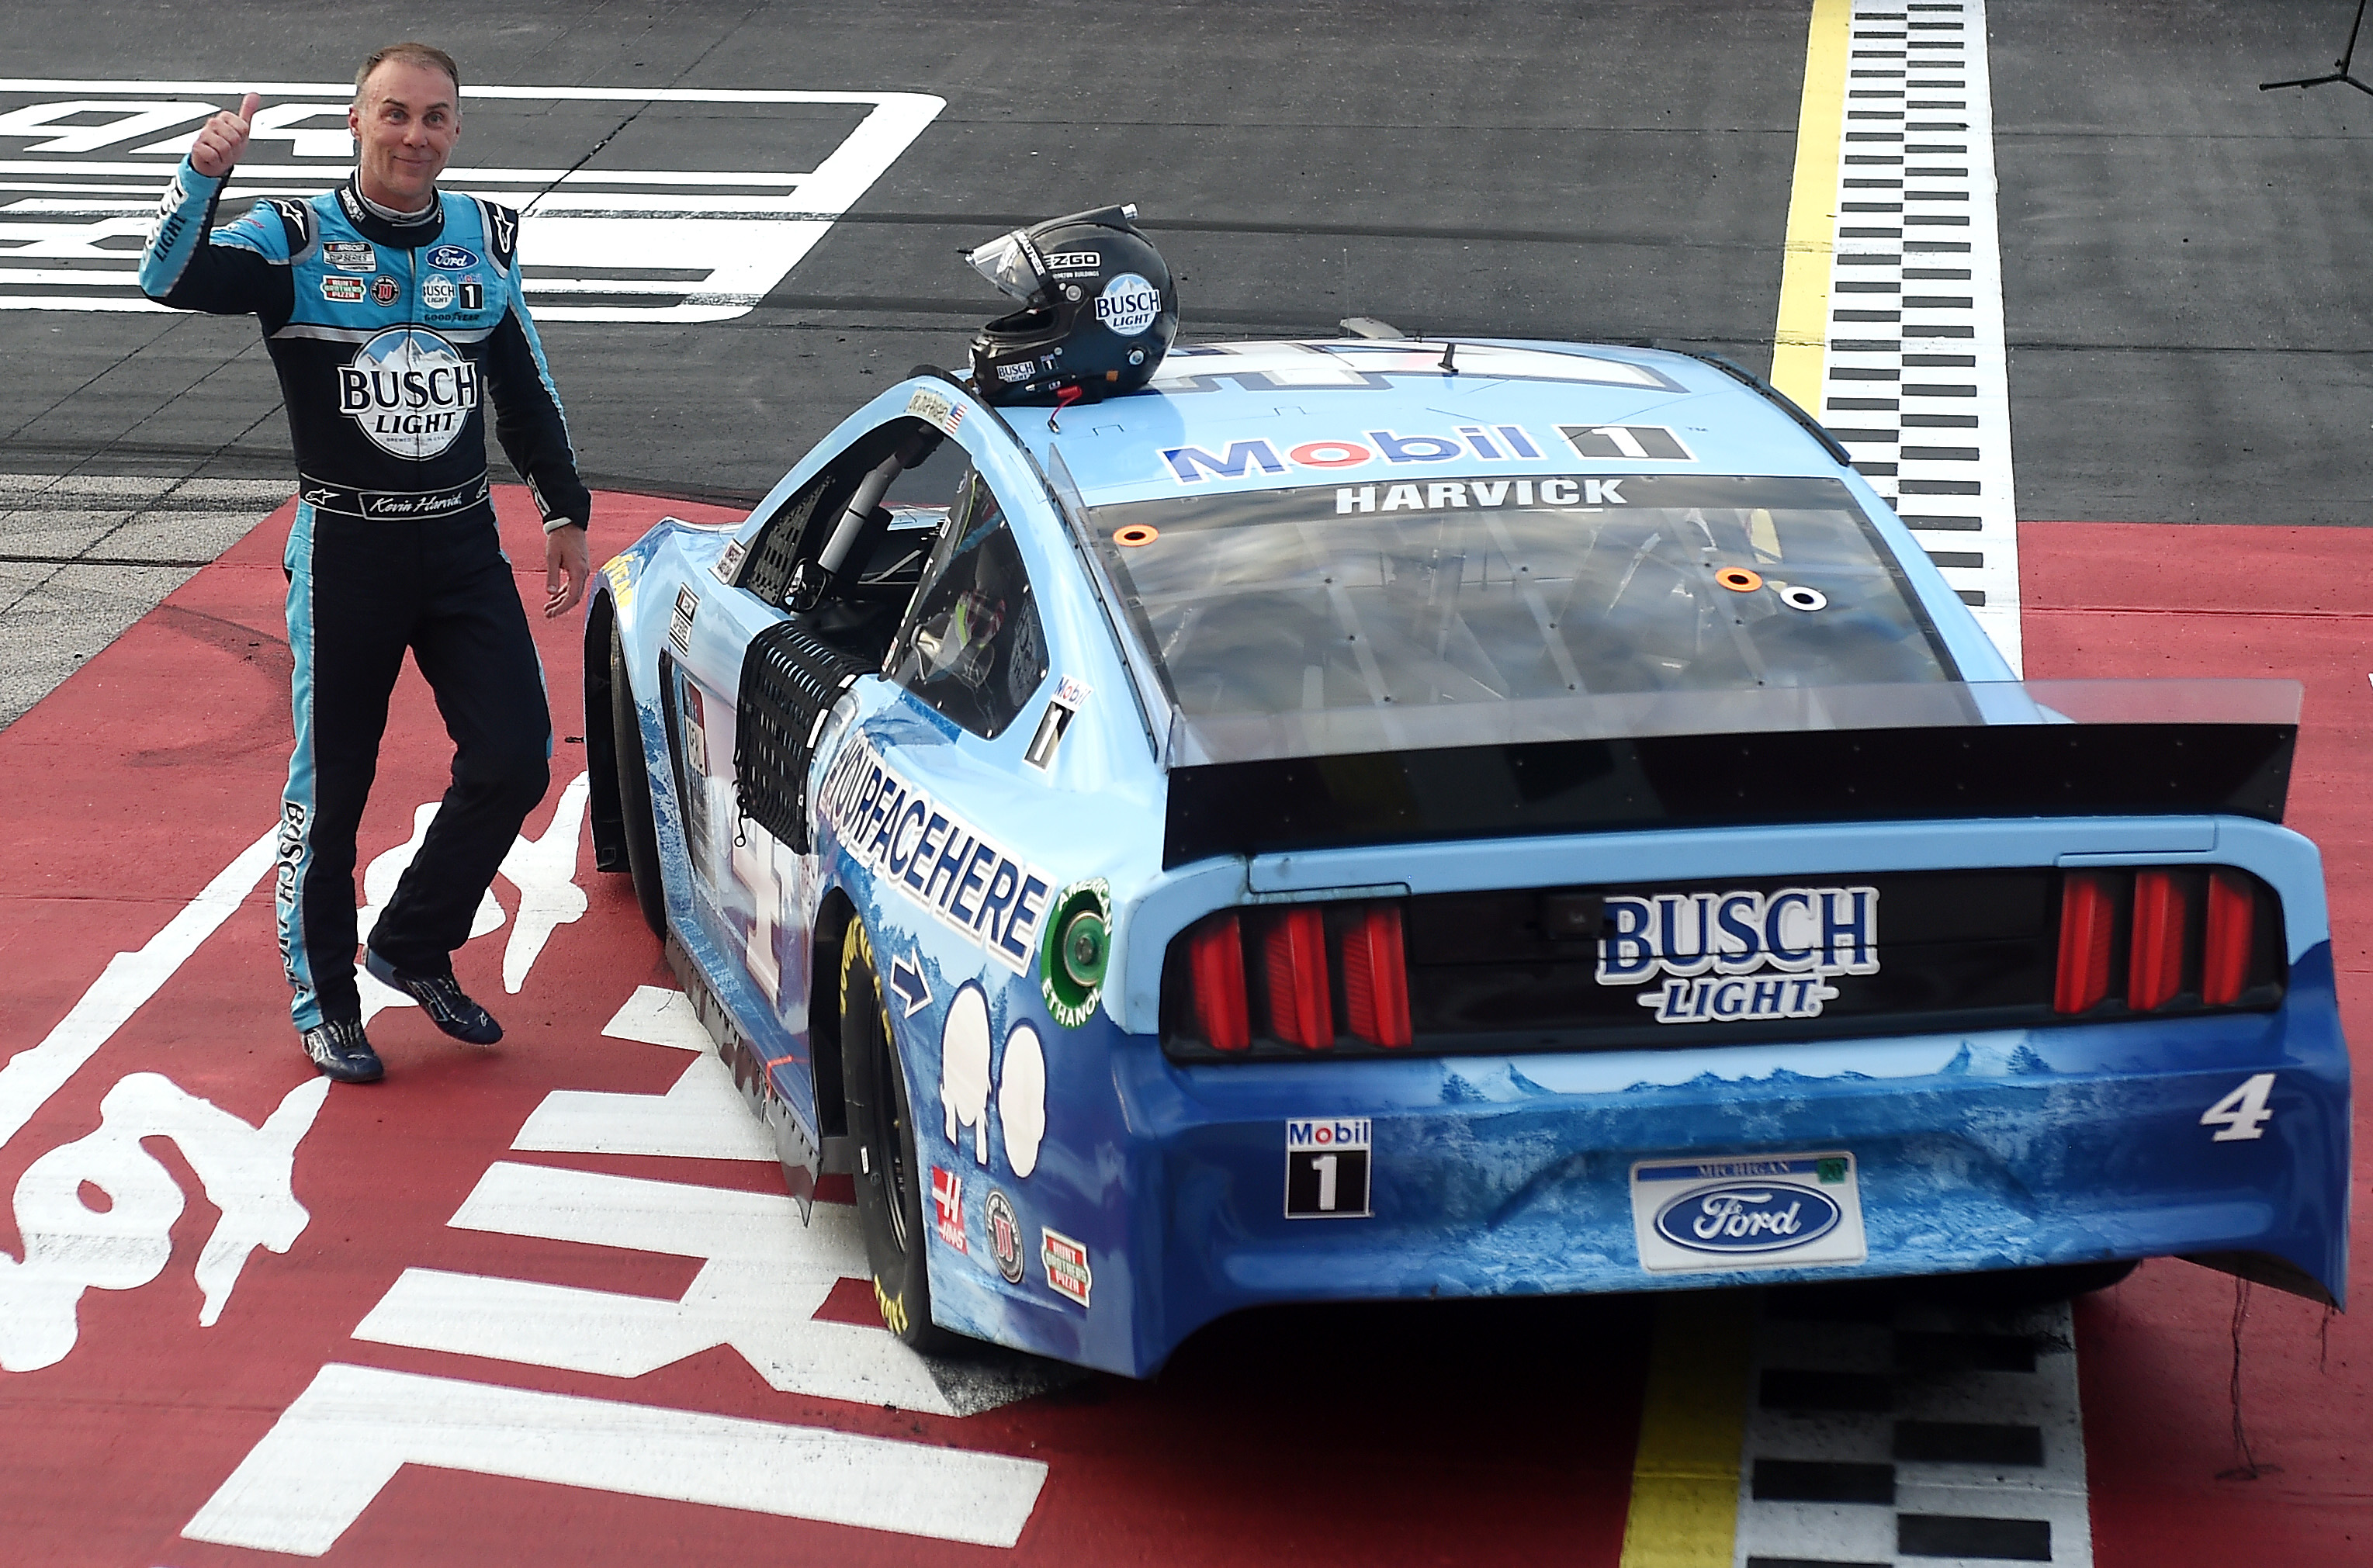 Kevin Harvick recalls 'overwhelming' scene when he replaced Dale Earnhardt.